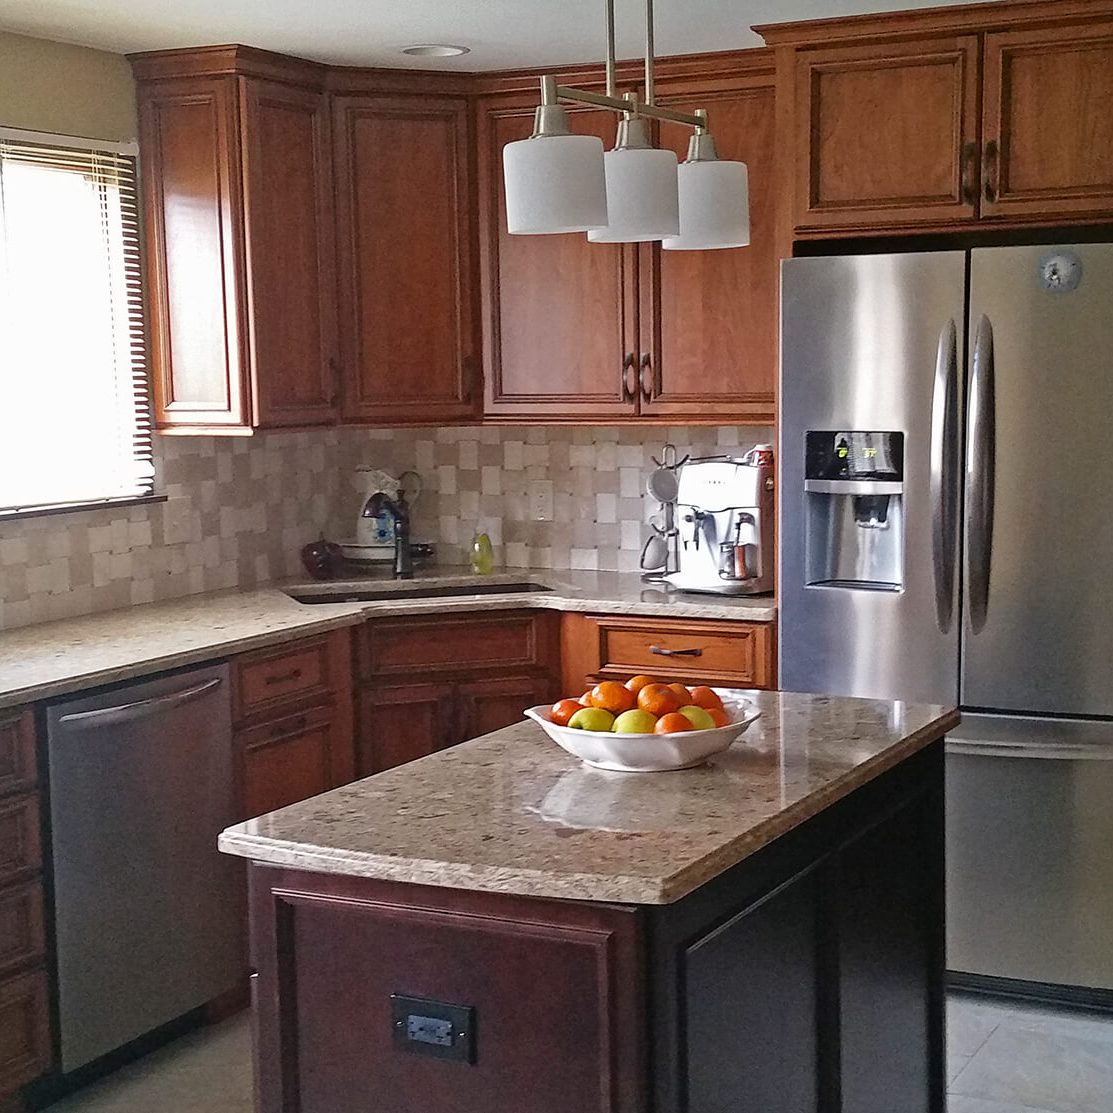 Photo from a kitchen remodel.